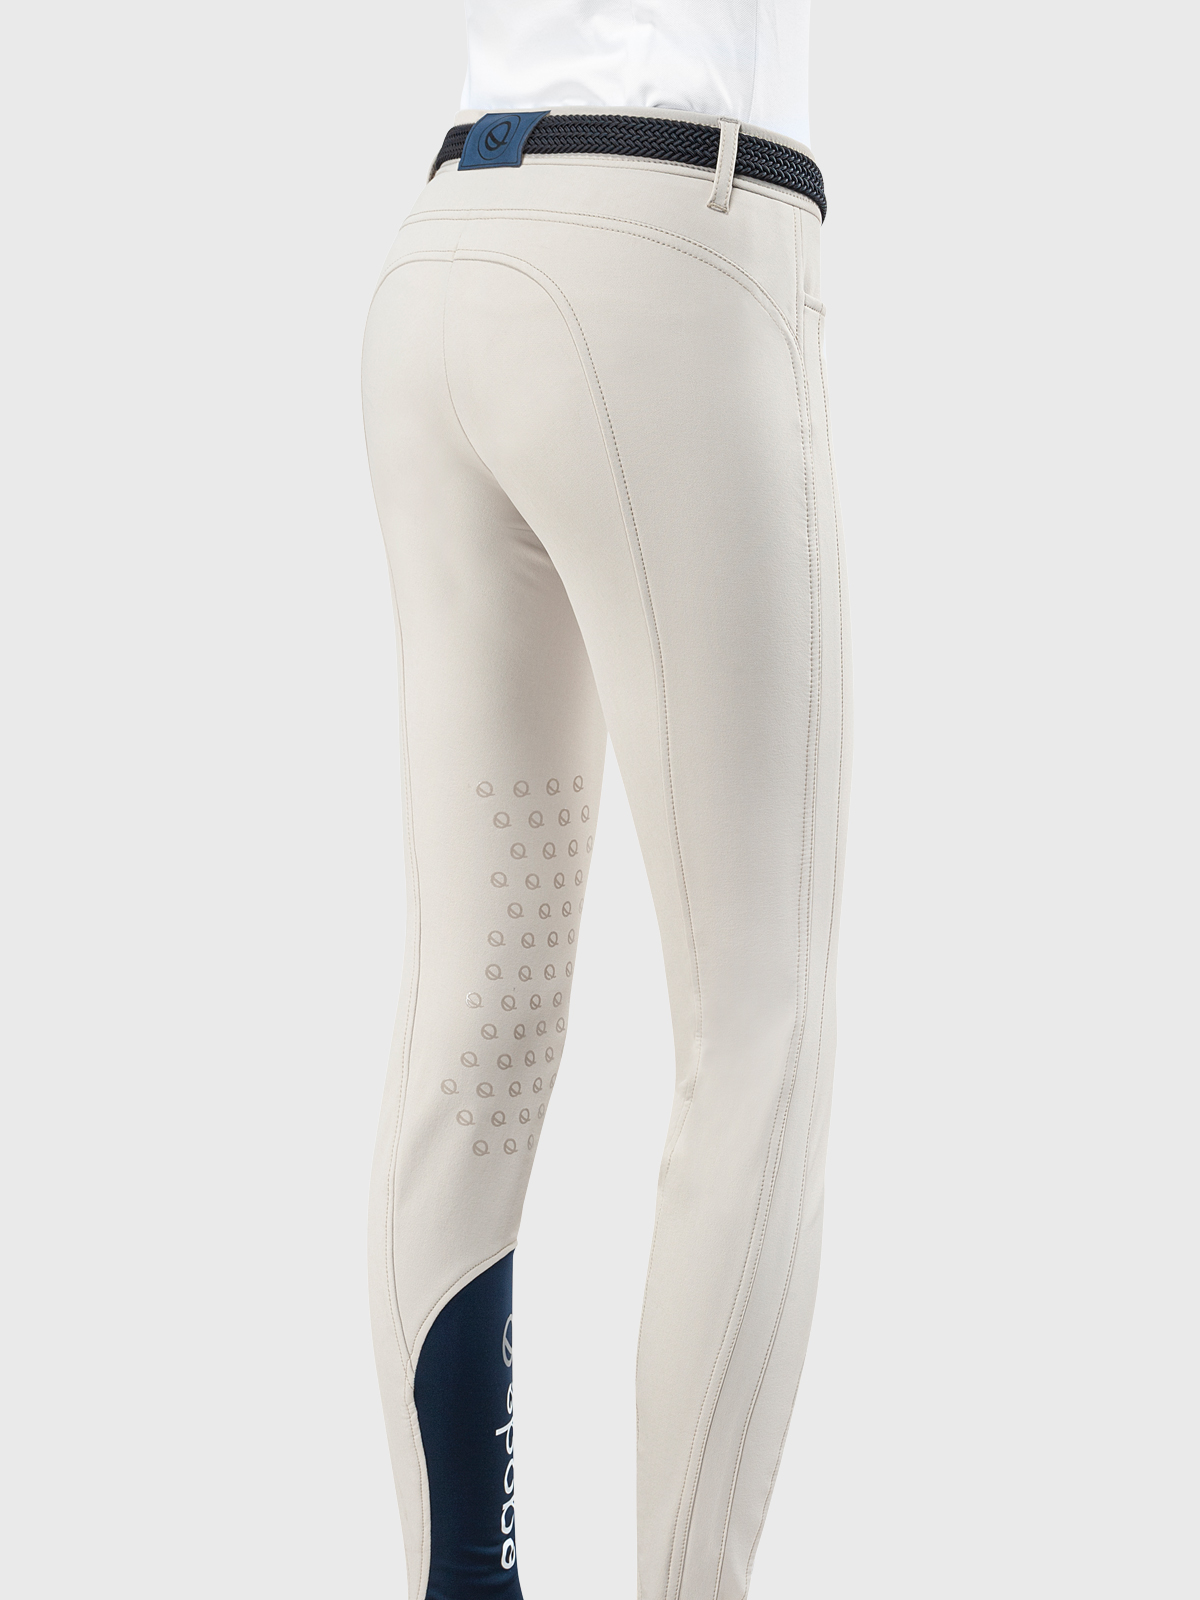 EQODE WOMEN'S BREECHES WITH KNEE GRIP 7